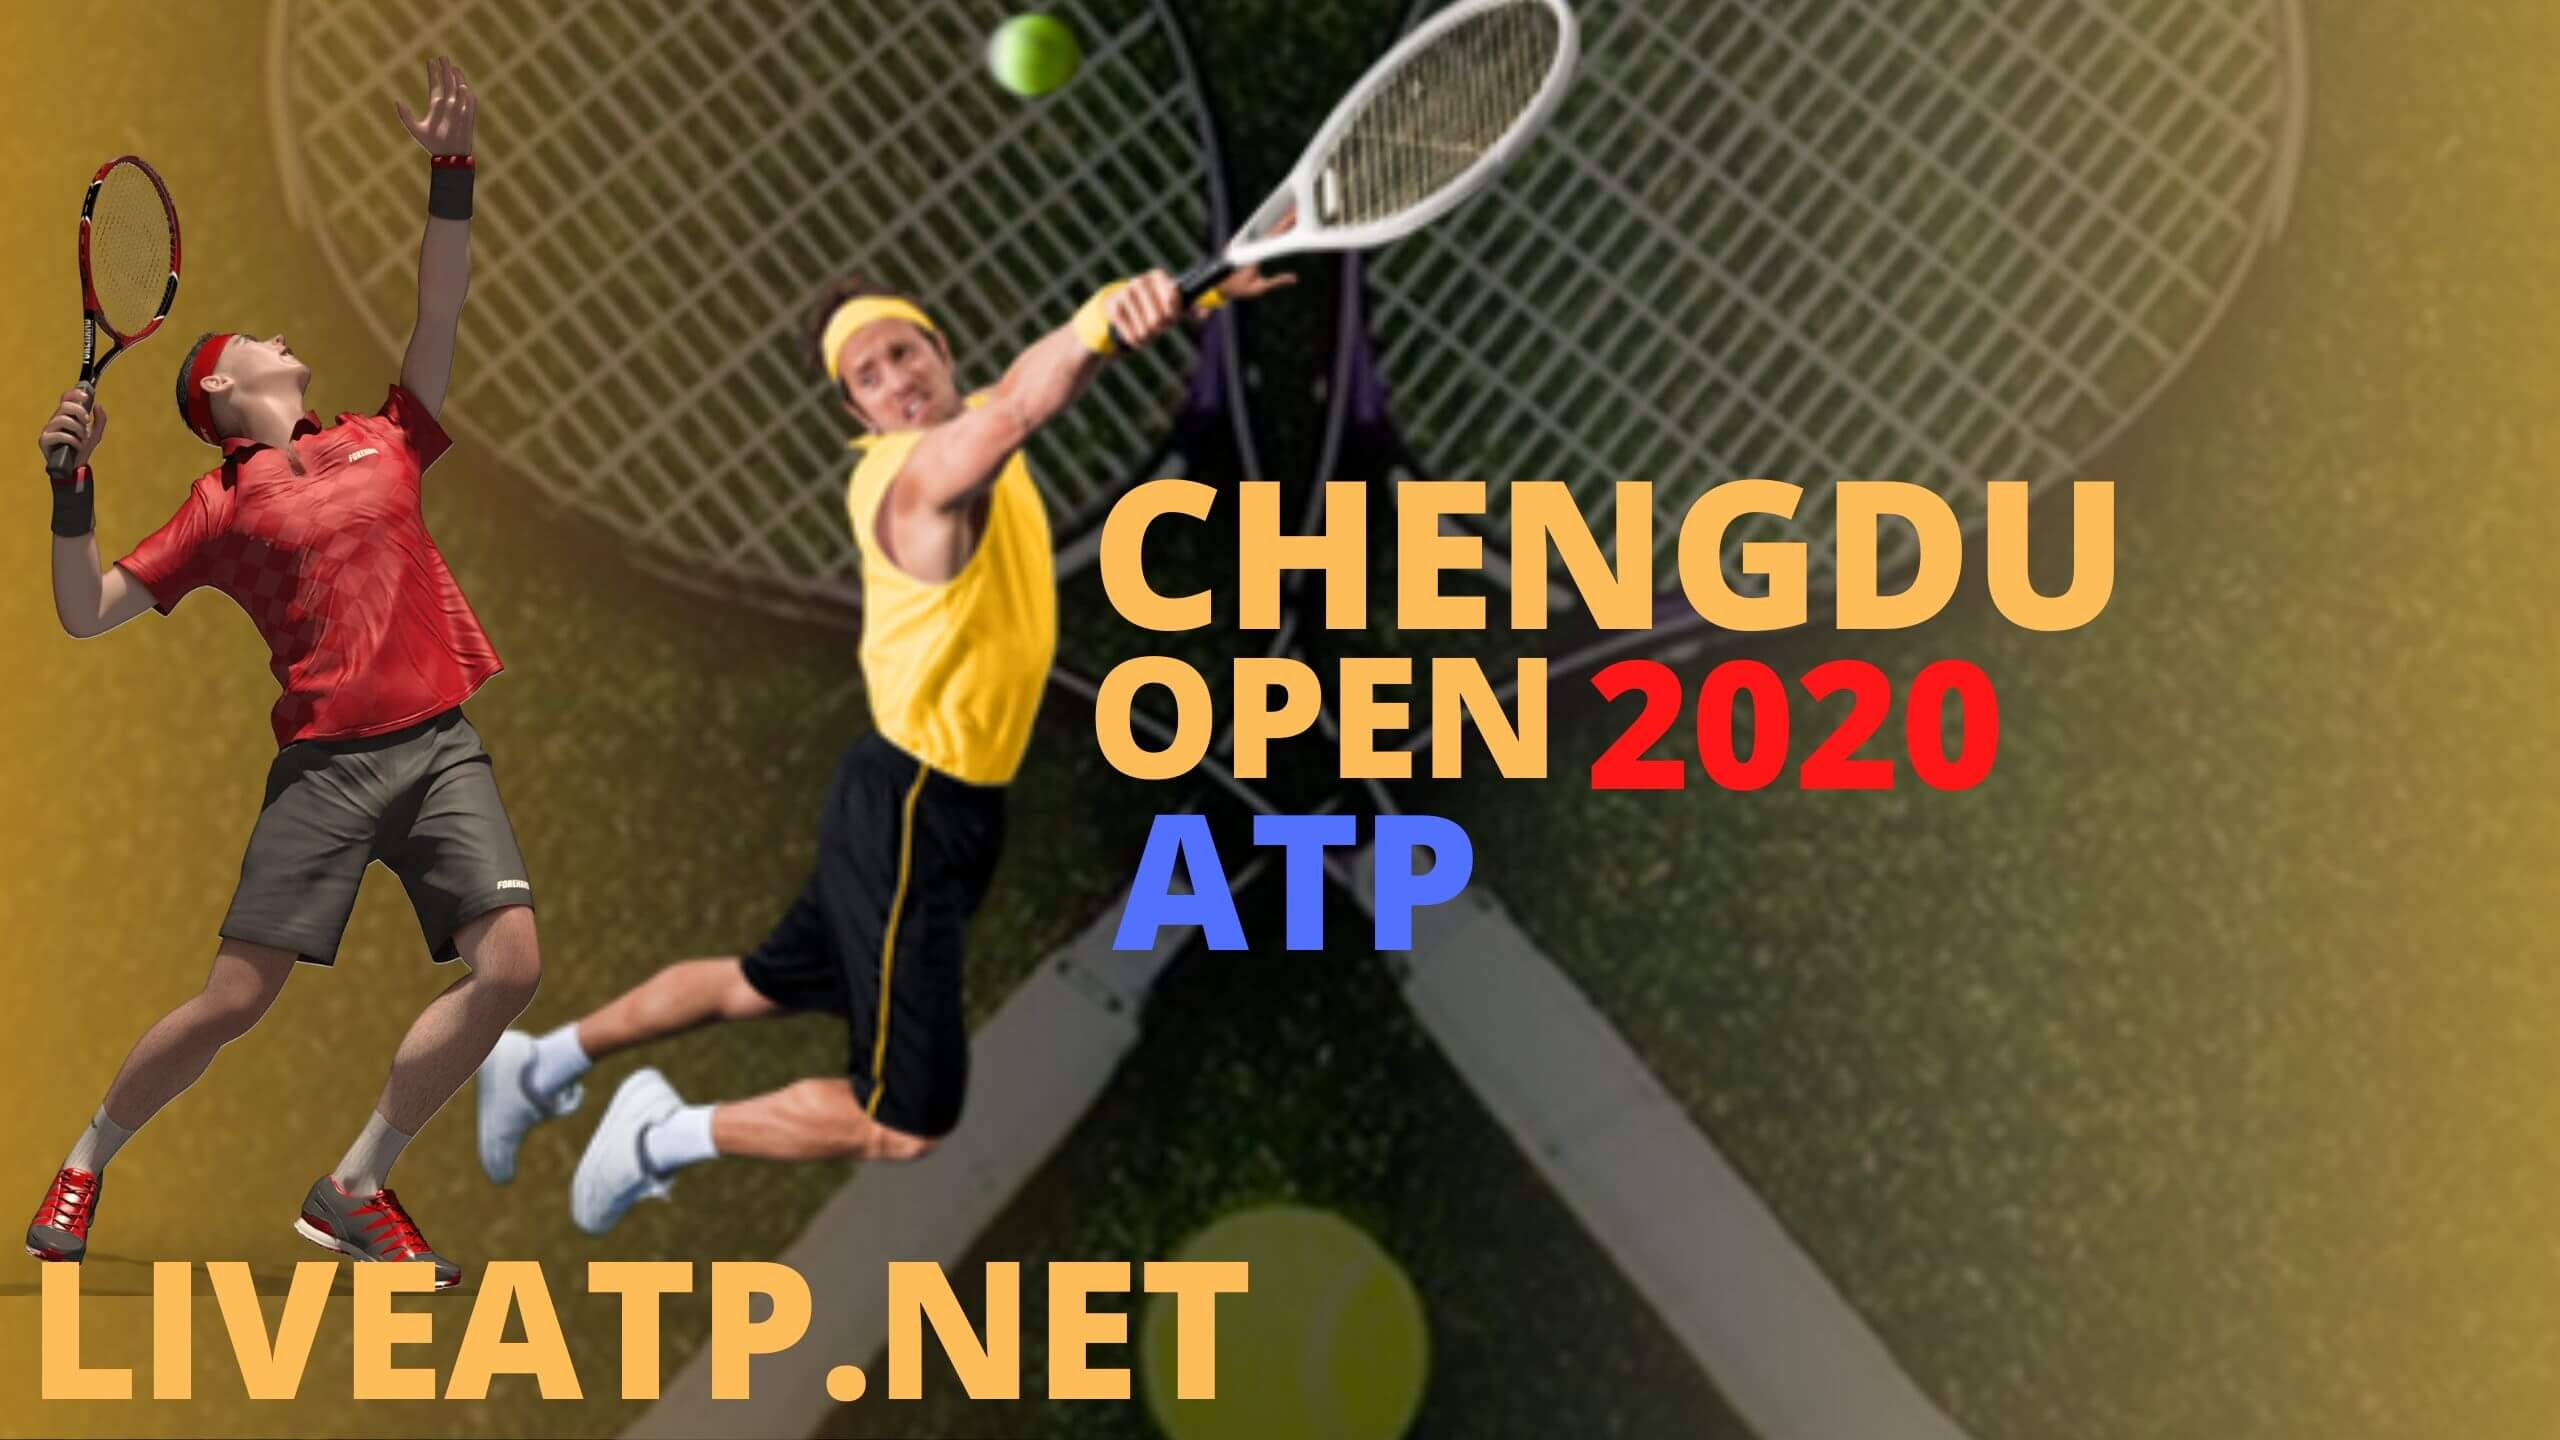 Chengdu Open Live Stream 2020 | Day 1